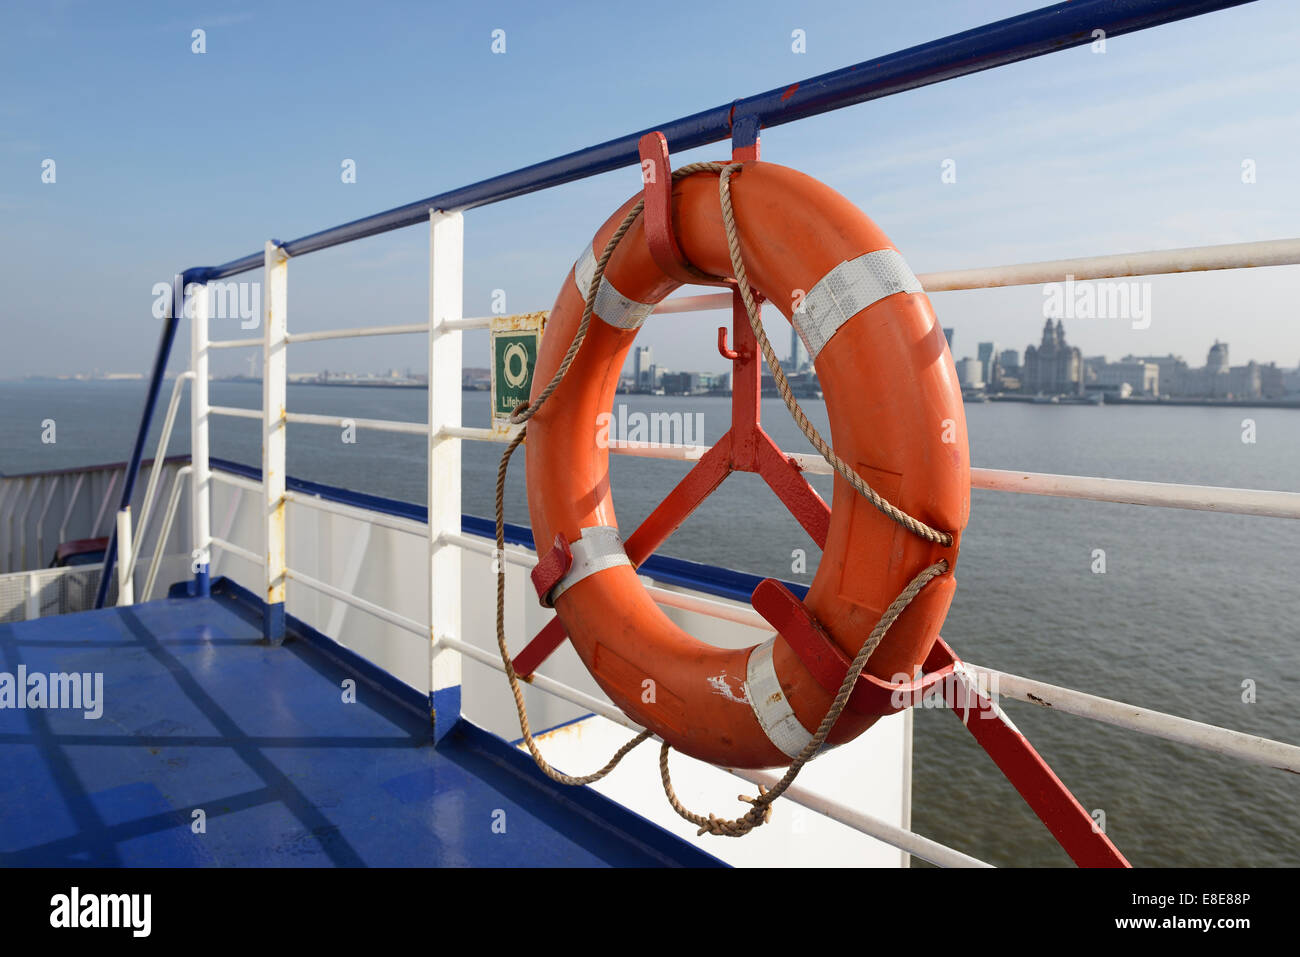 A life ring on the deck of a Stena Line Irish Sea ferry on the River Mersey - Stock Image